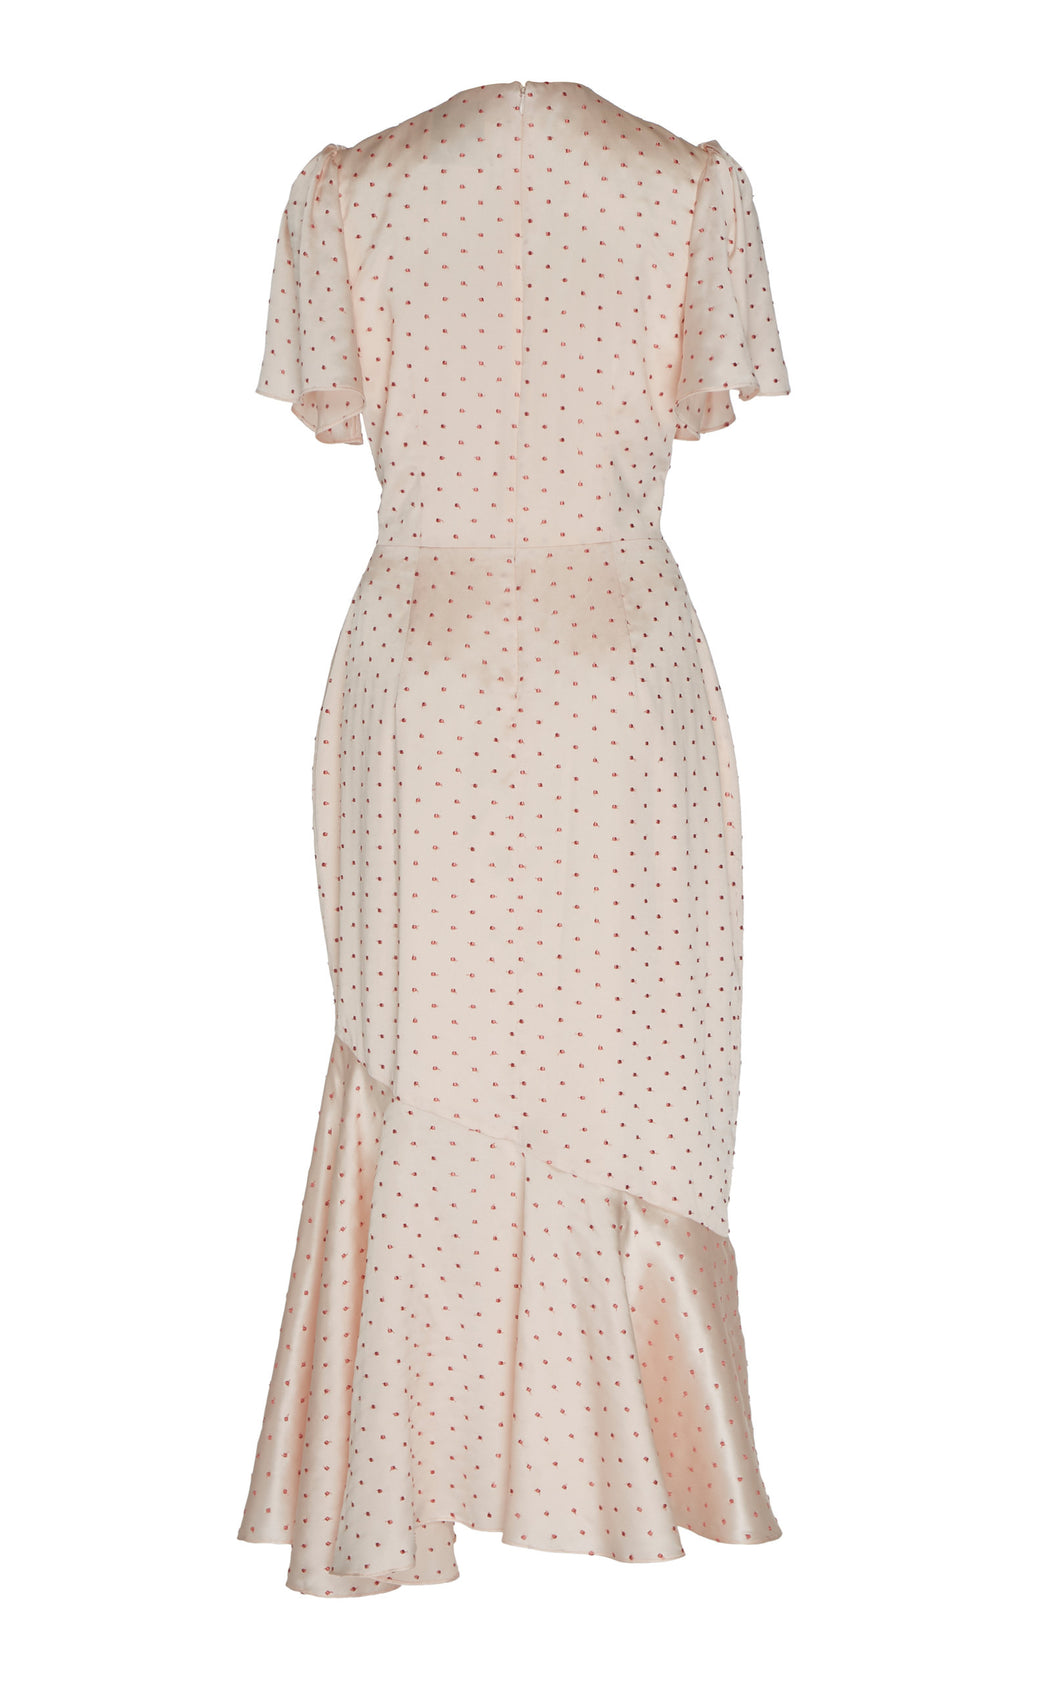 Ingrid Polka Dot Dress